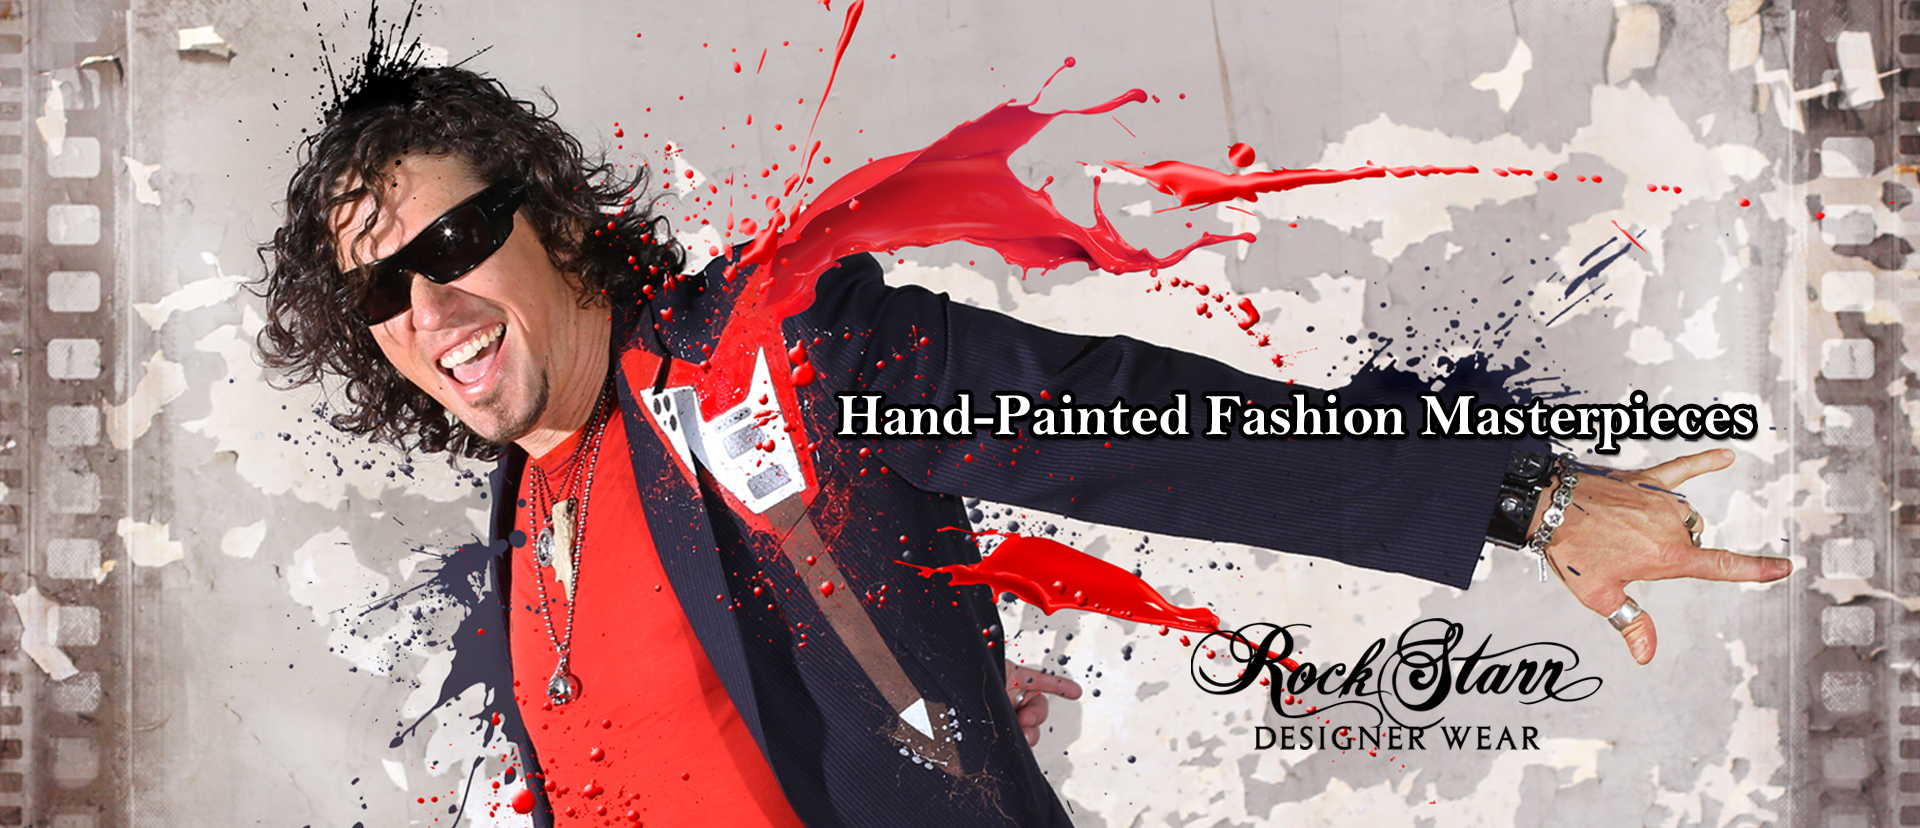 RockStarr Designer Wear David Starr Mens Womens Fashions